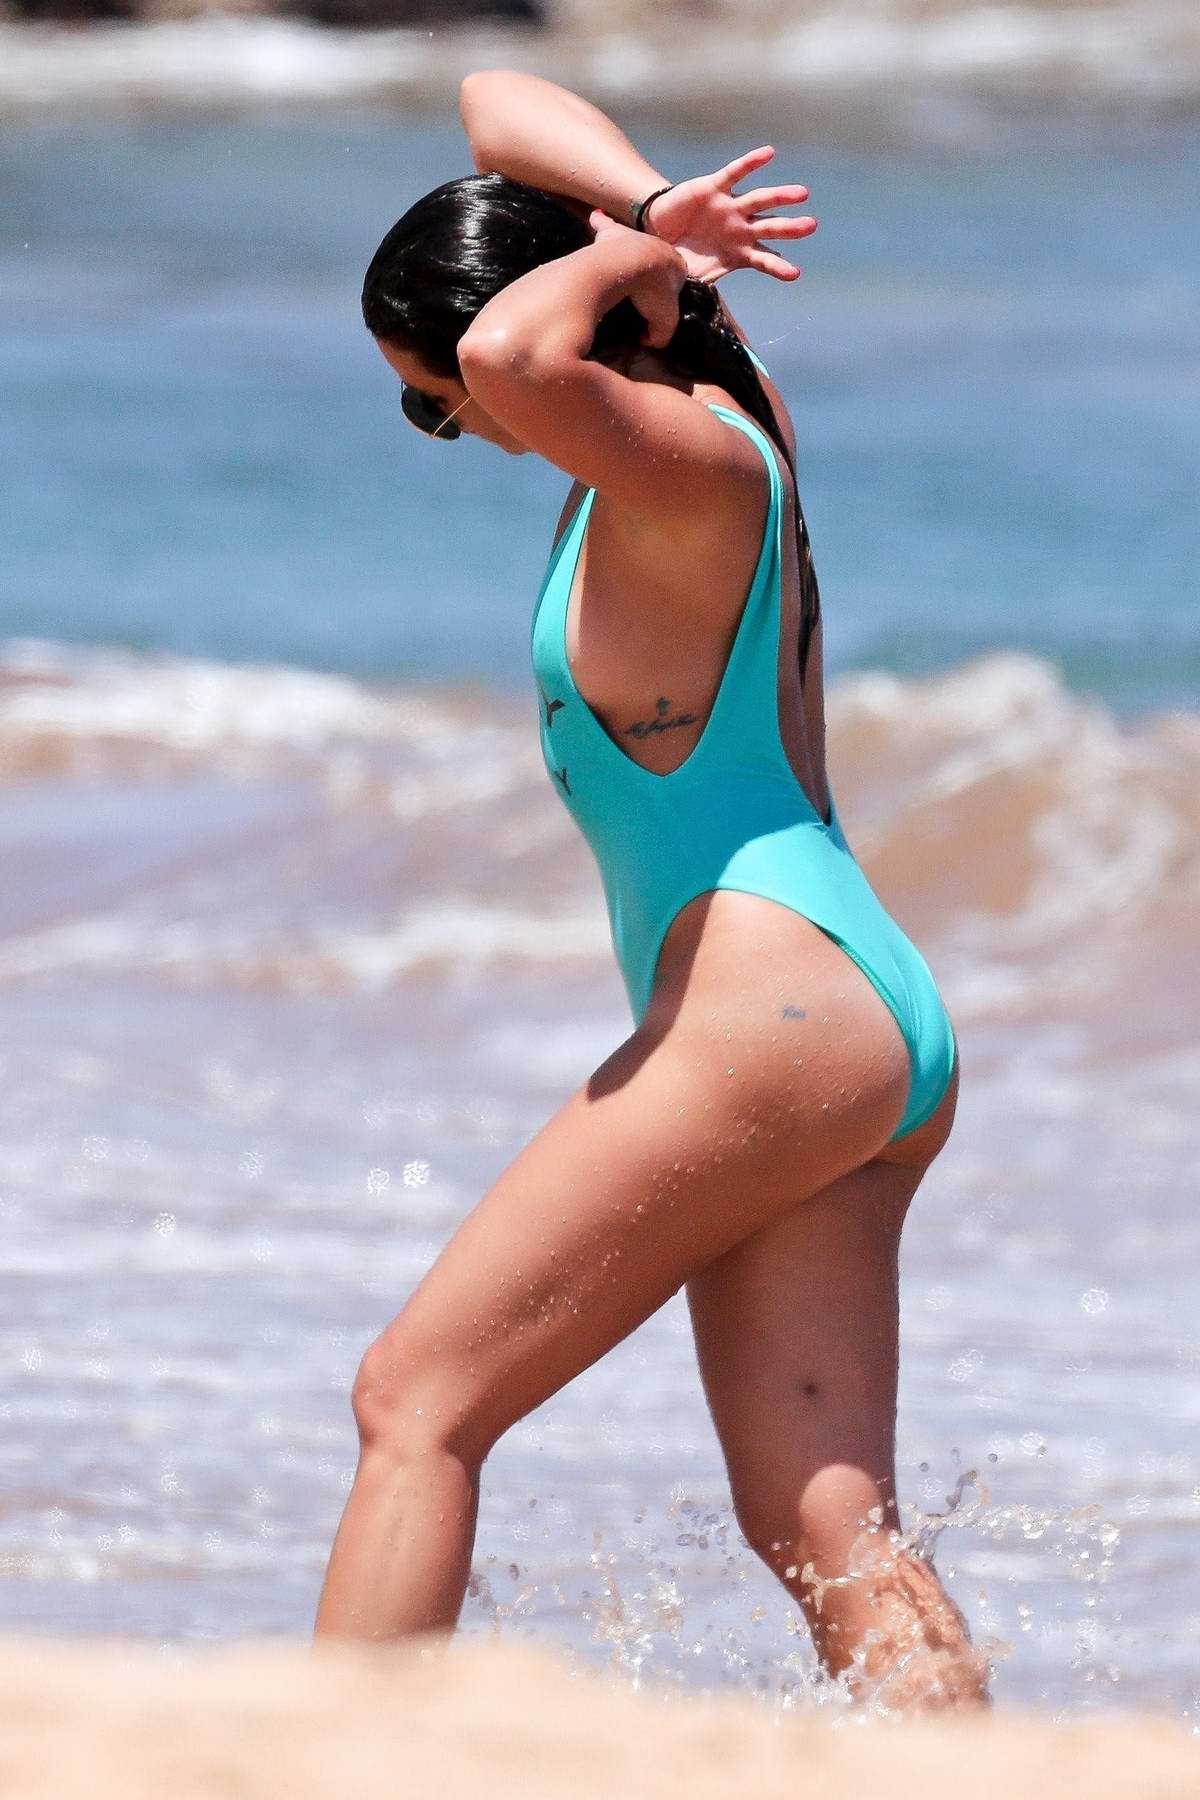 lea-michele-in-a-blue-swimsuit-shows-off-her-yoga-skills-on-a-paddle-board-in-maui-hawaii-300617_8.jpg